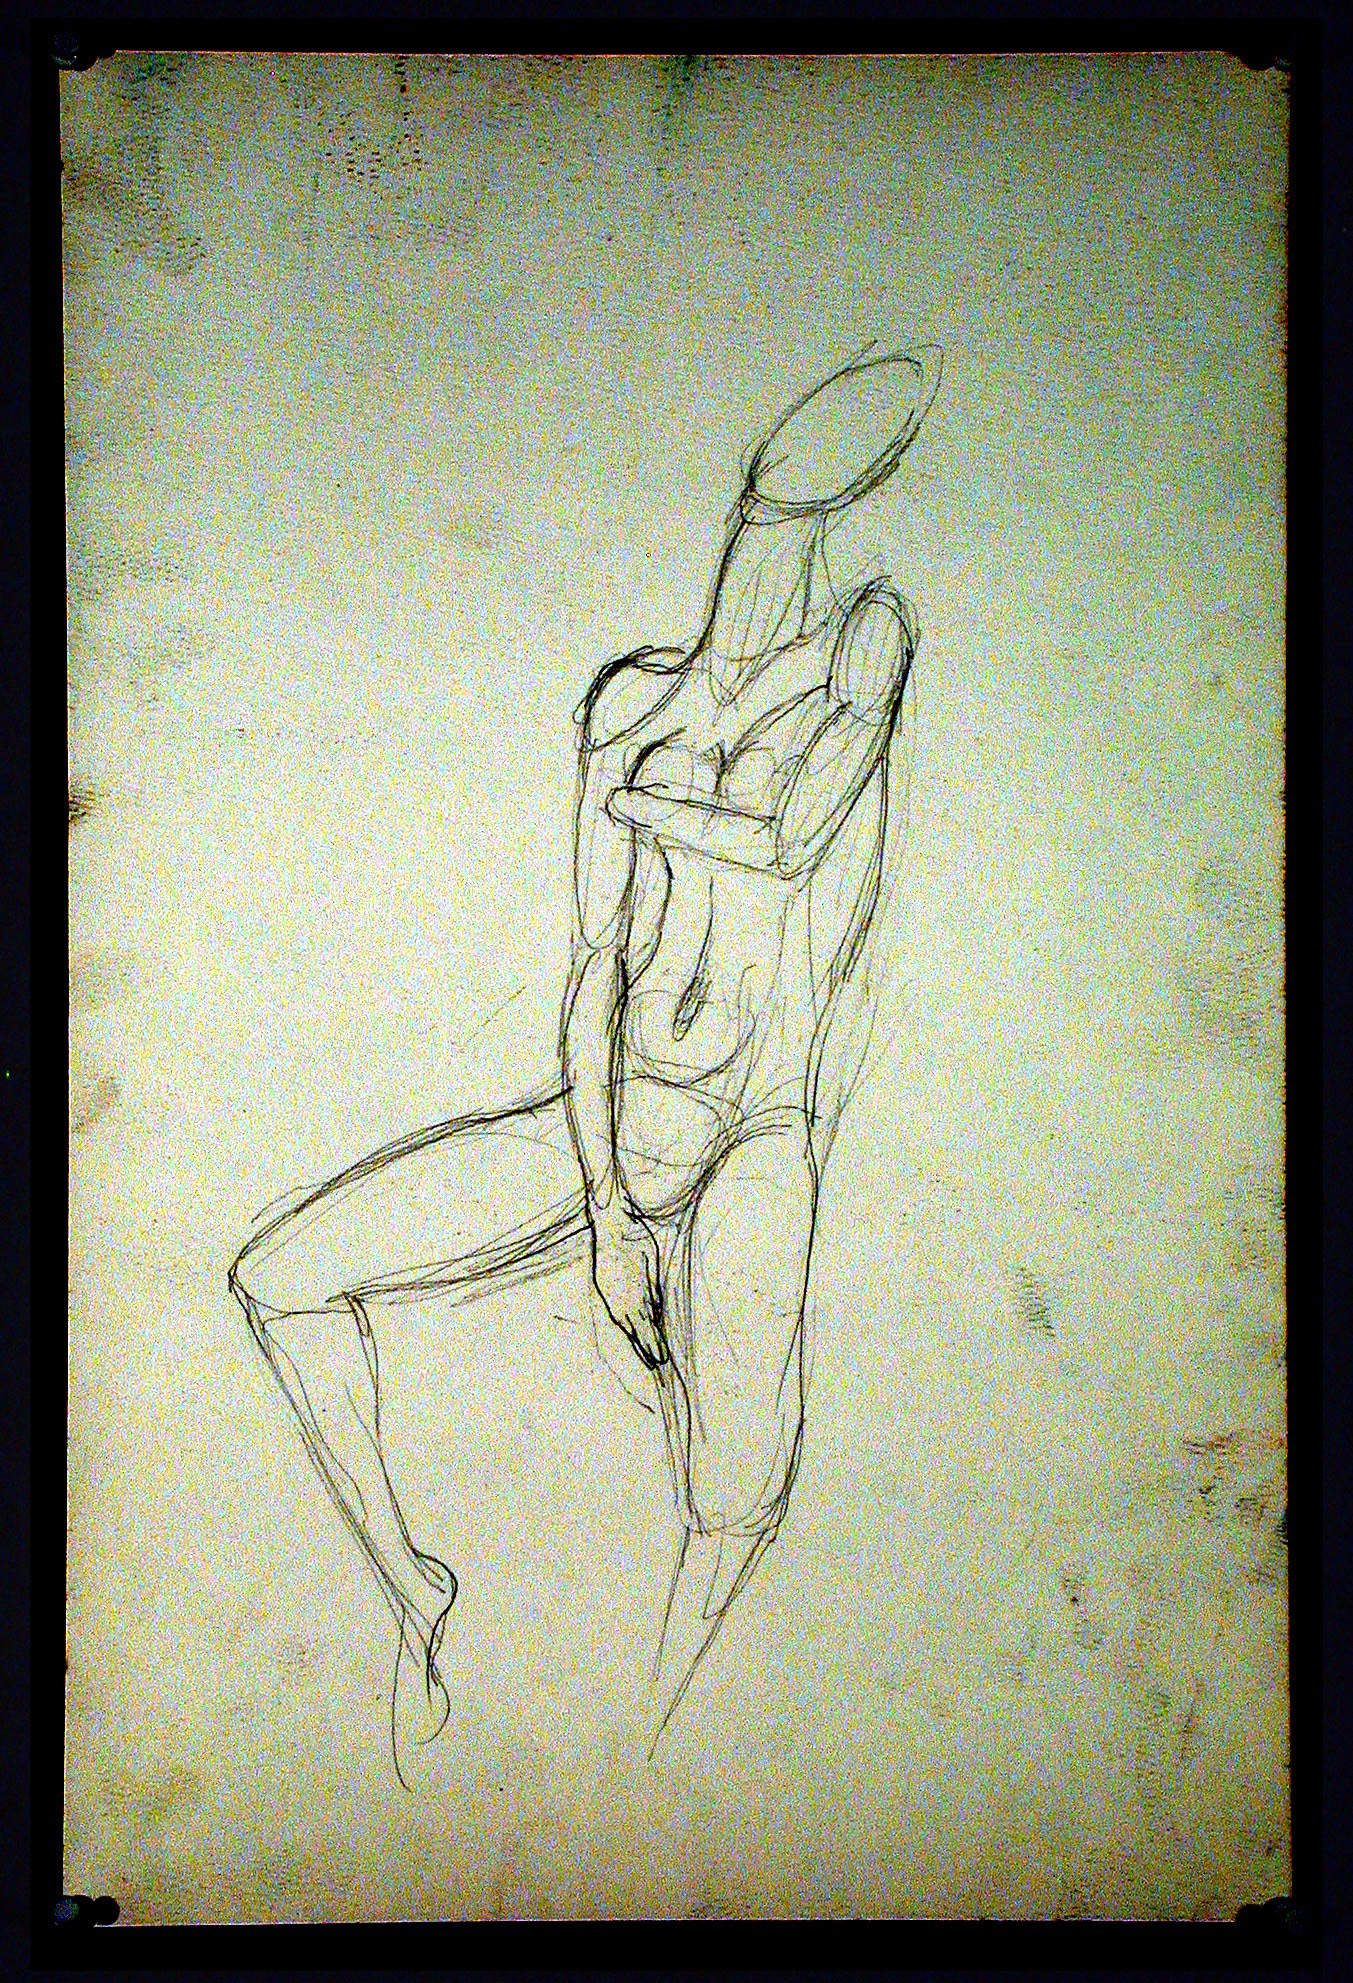 2002  Graphite on paper  24x18 in.